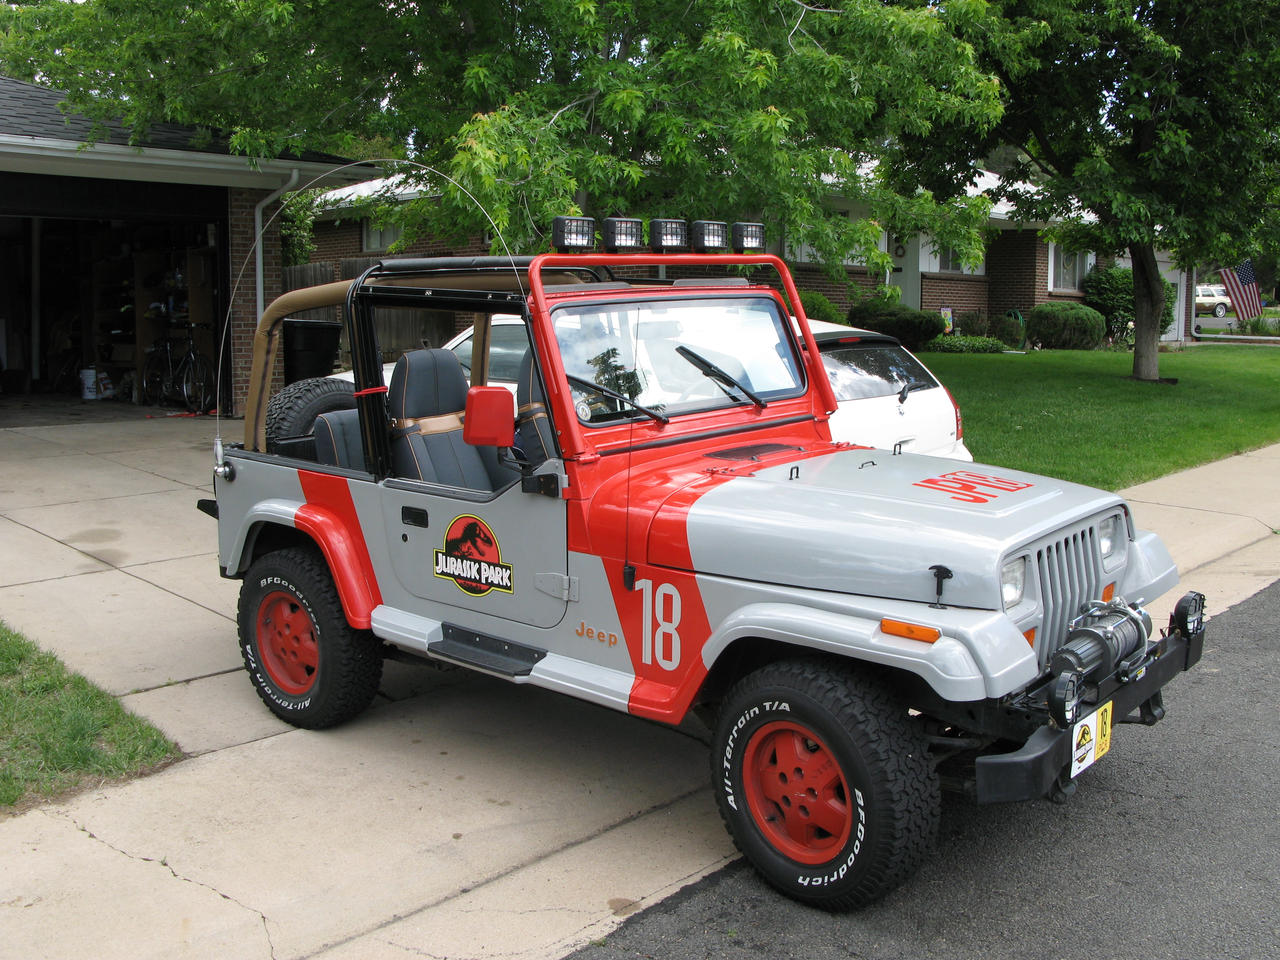 of could i all find liveried list the jurassic park sale jeep a cou for vehicles